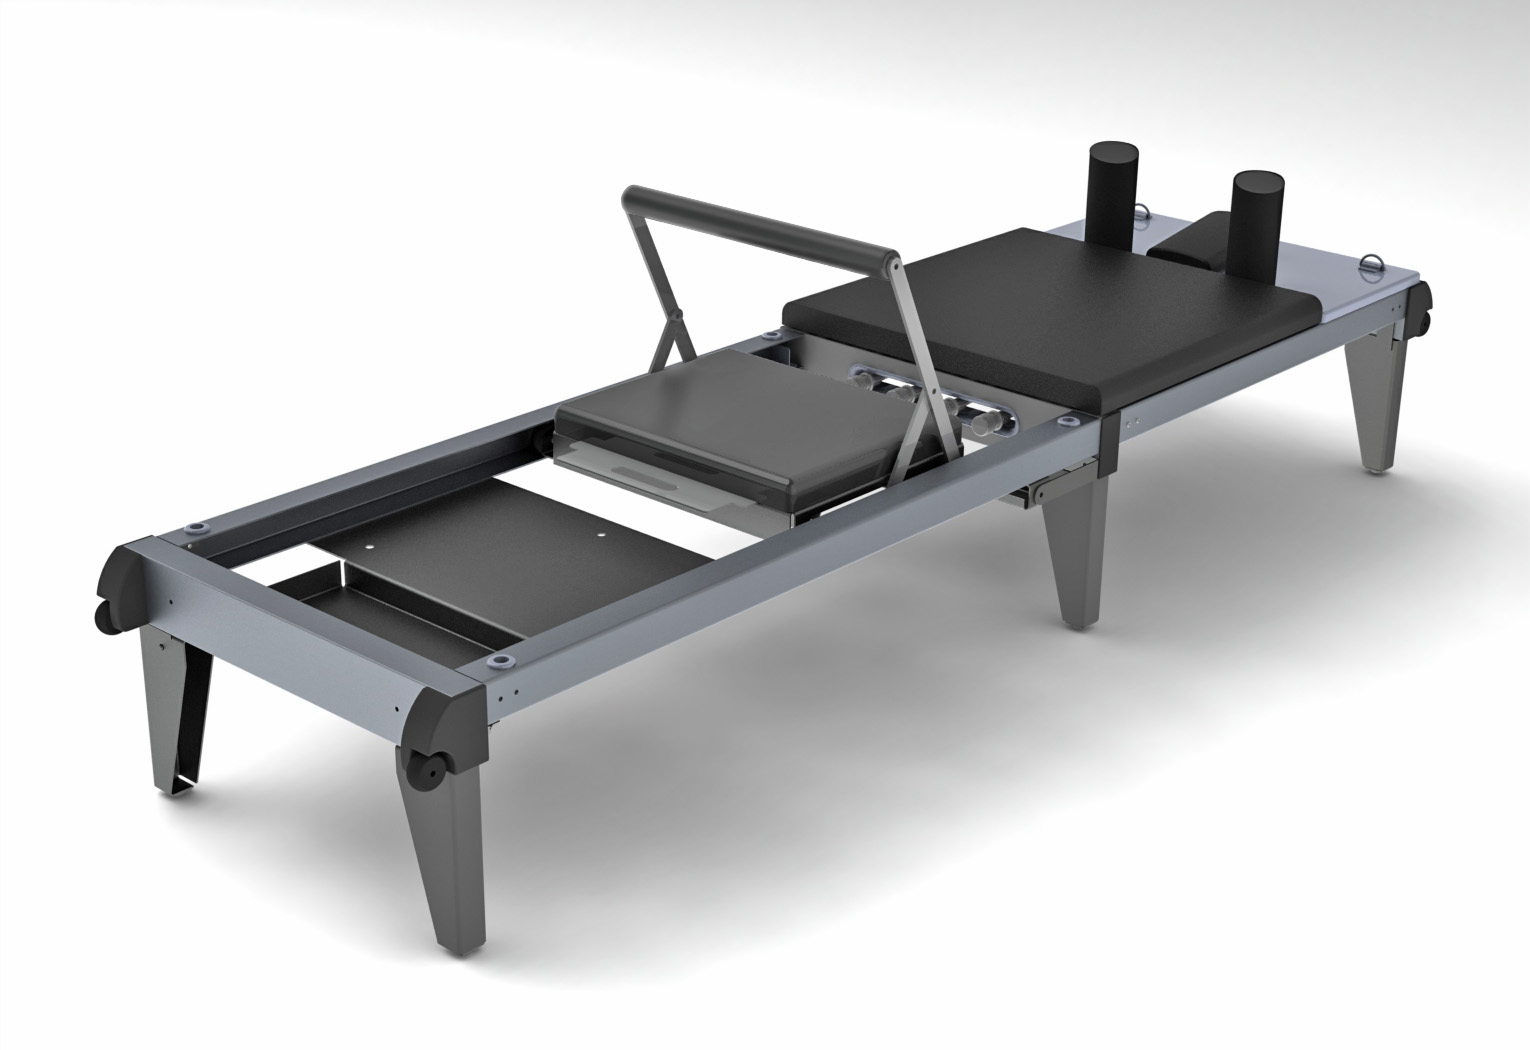 Product design for a pilates workout table.